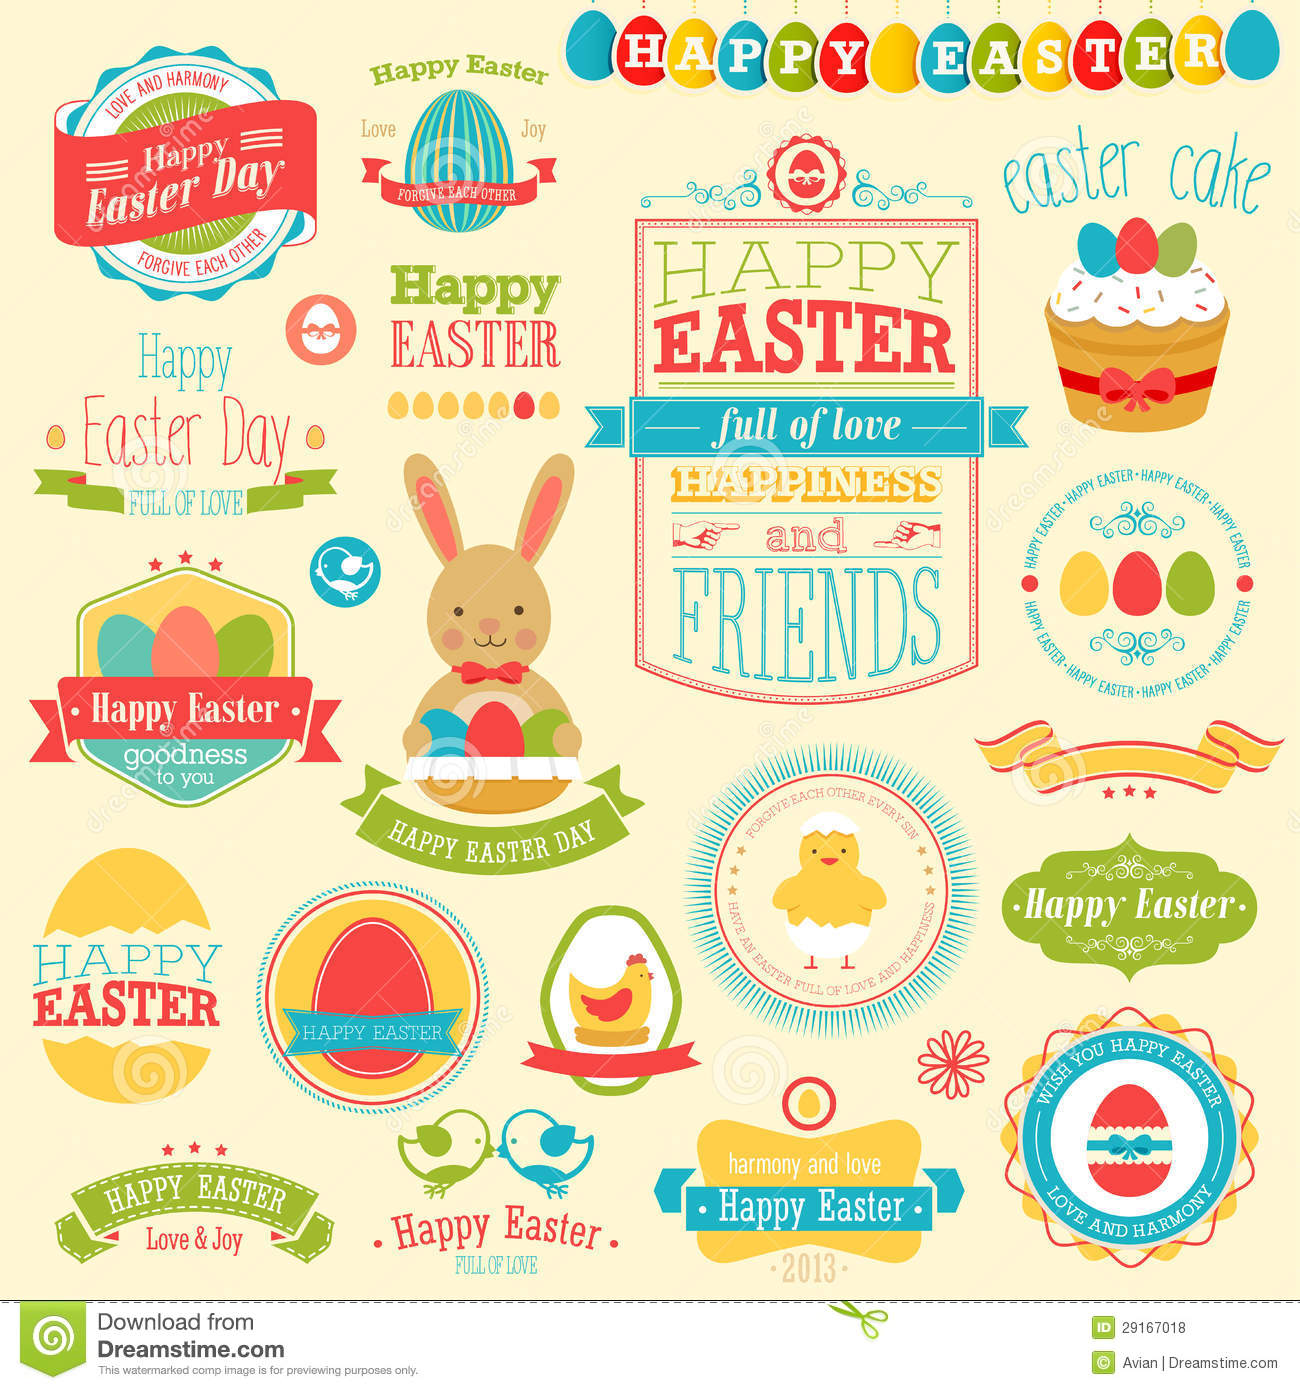 How is easter date set in Melbourne